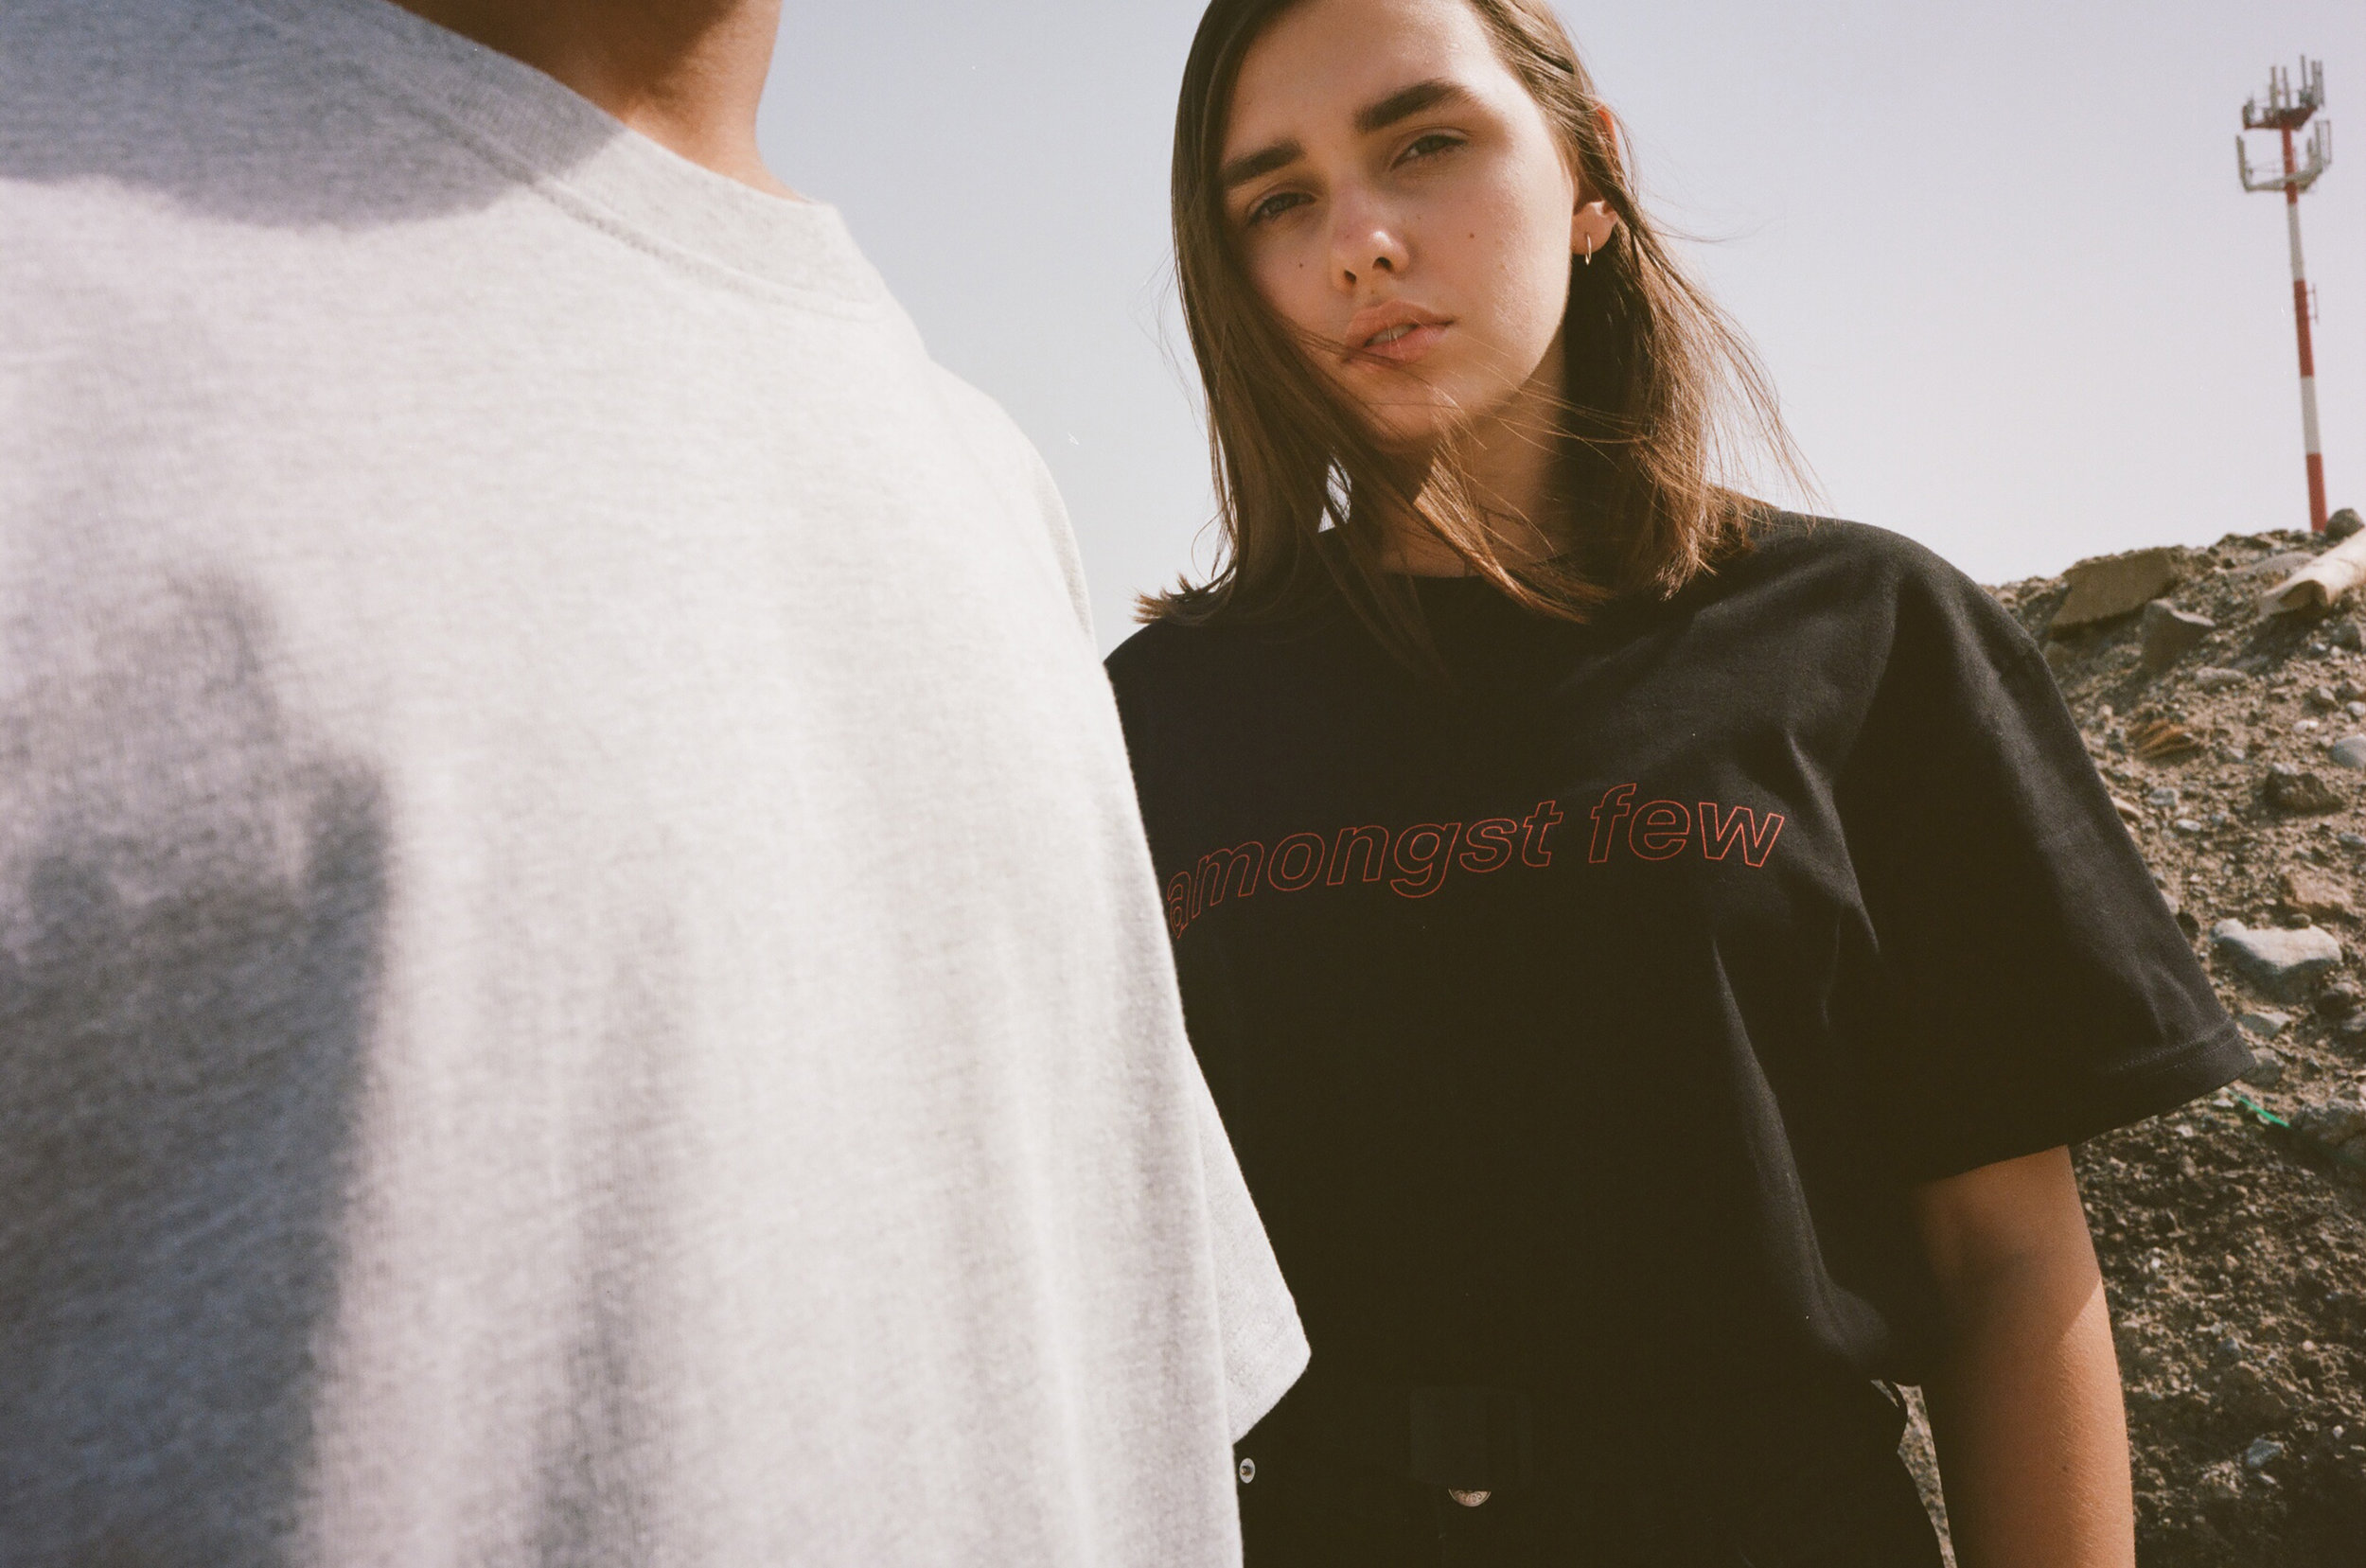 amongst-few-limited-liability-collection-lookbook-07.jpg